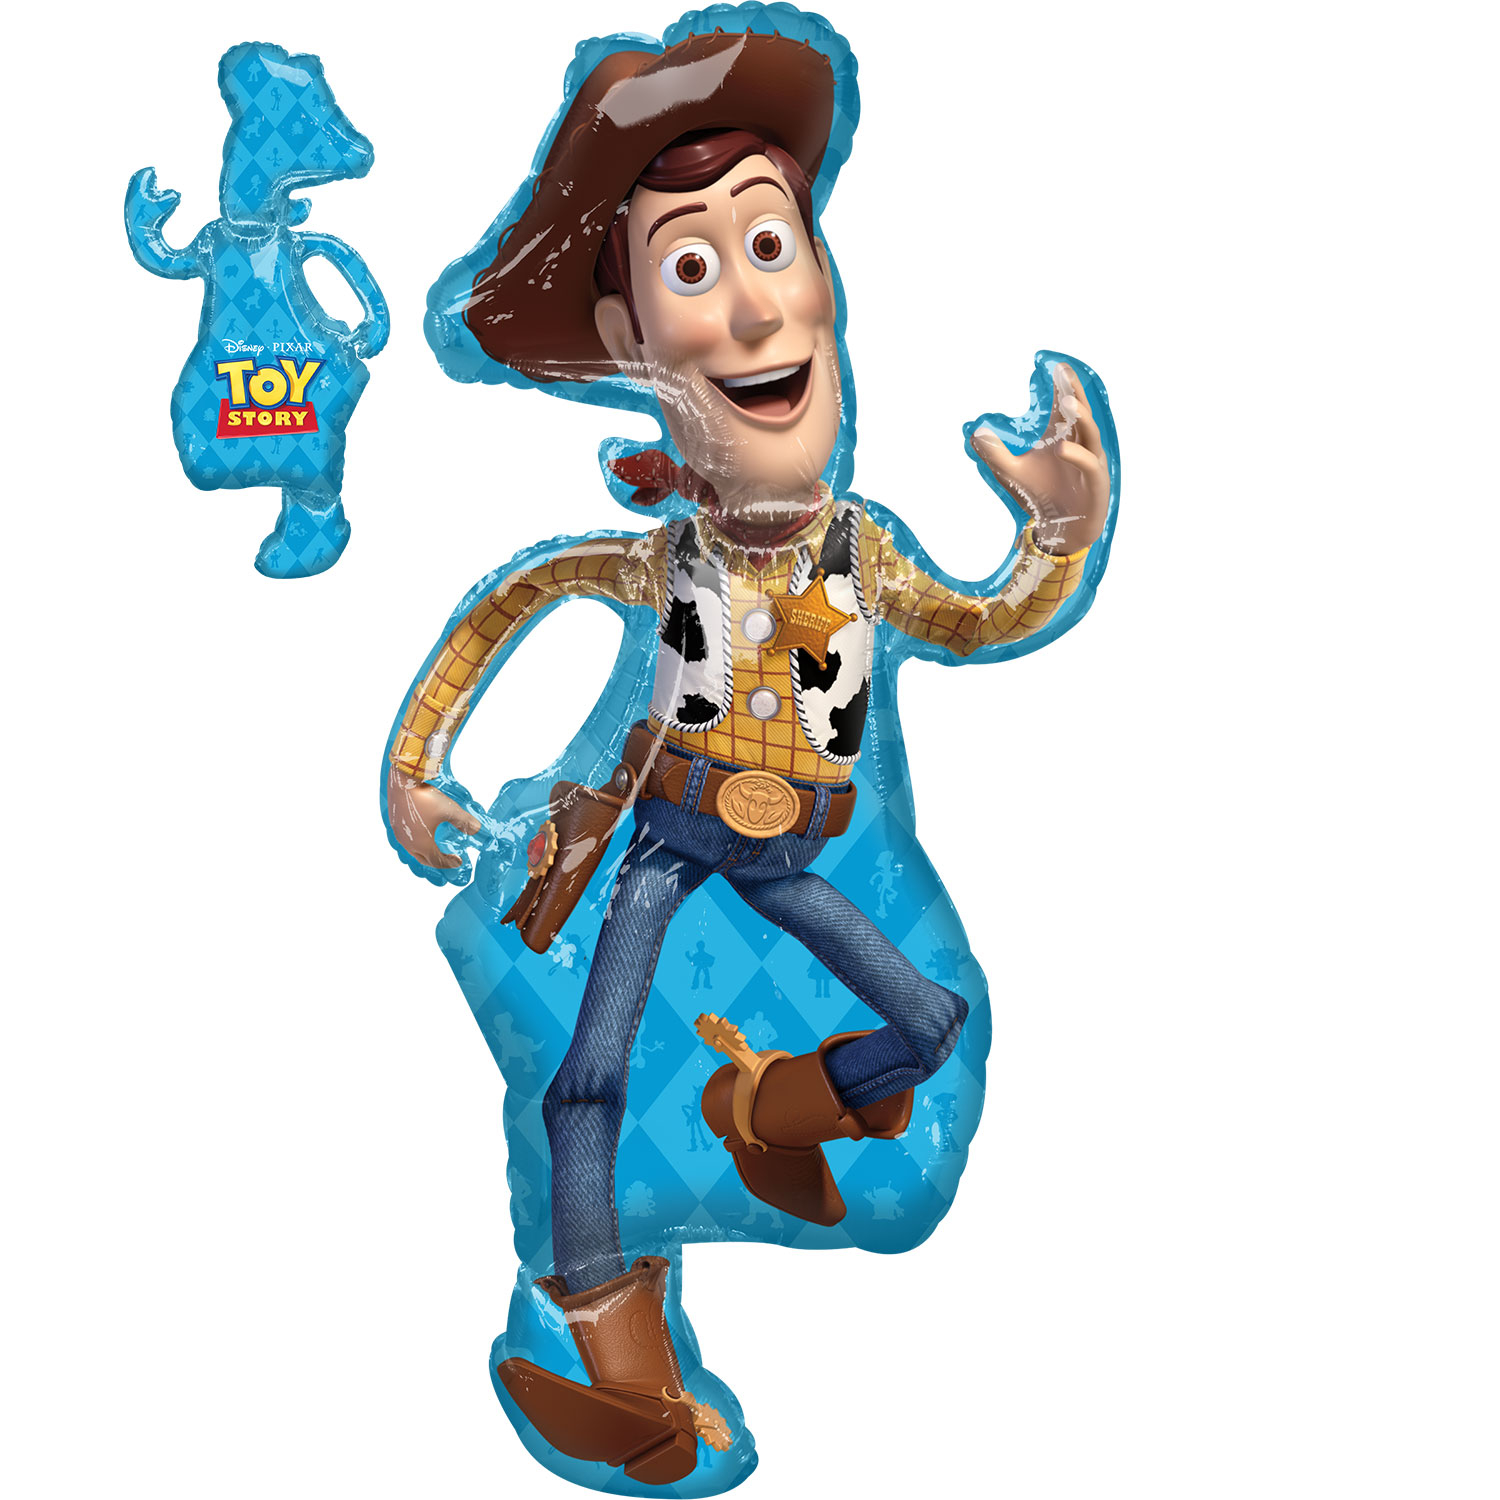 Toy Story Party Woody Supershape Foil Balloon